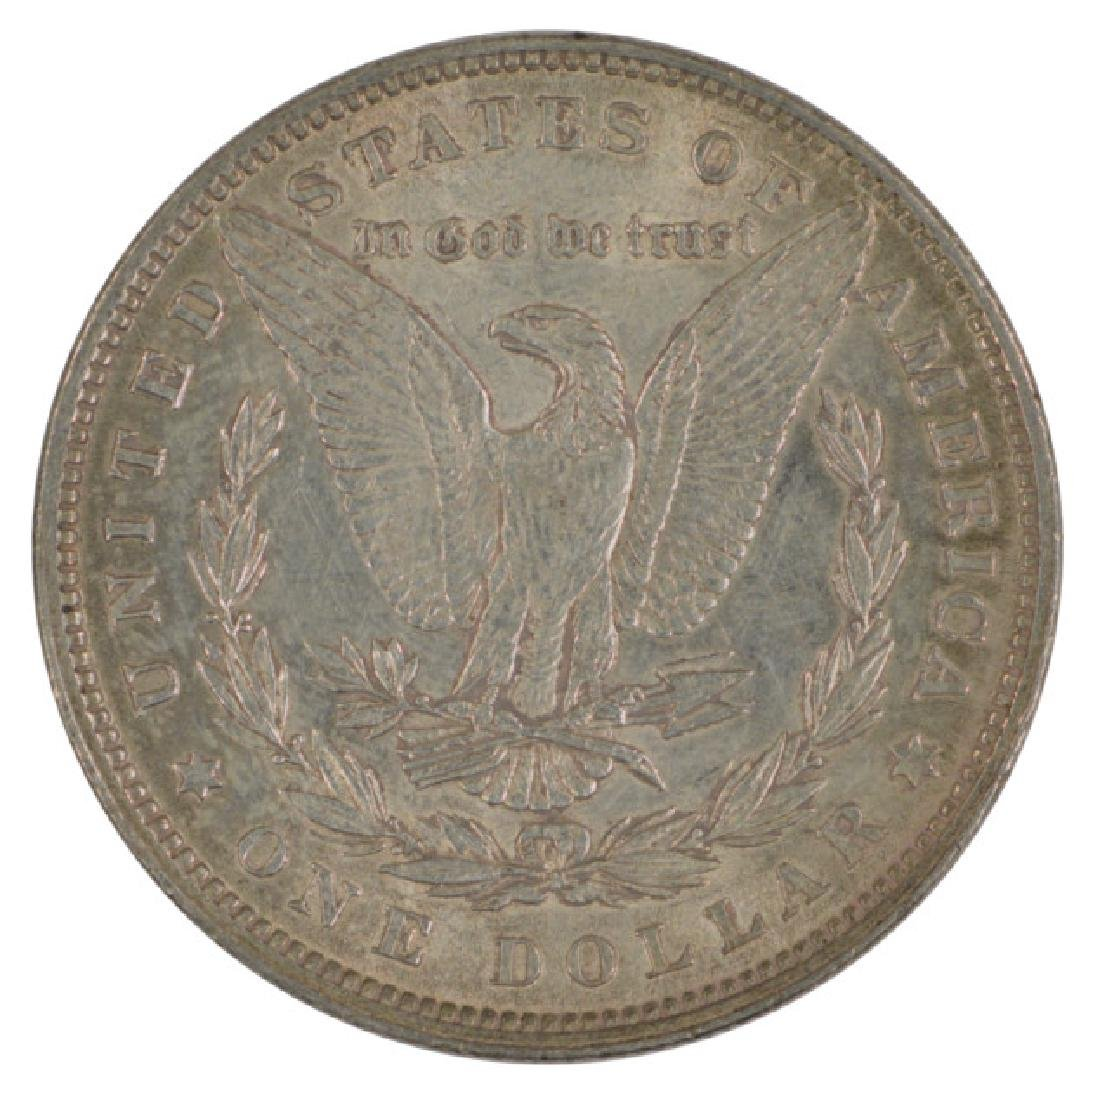 1880 $1 Morgan Silver Dollar Coin - 2